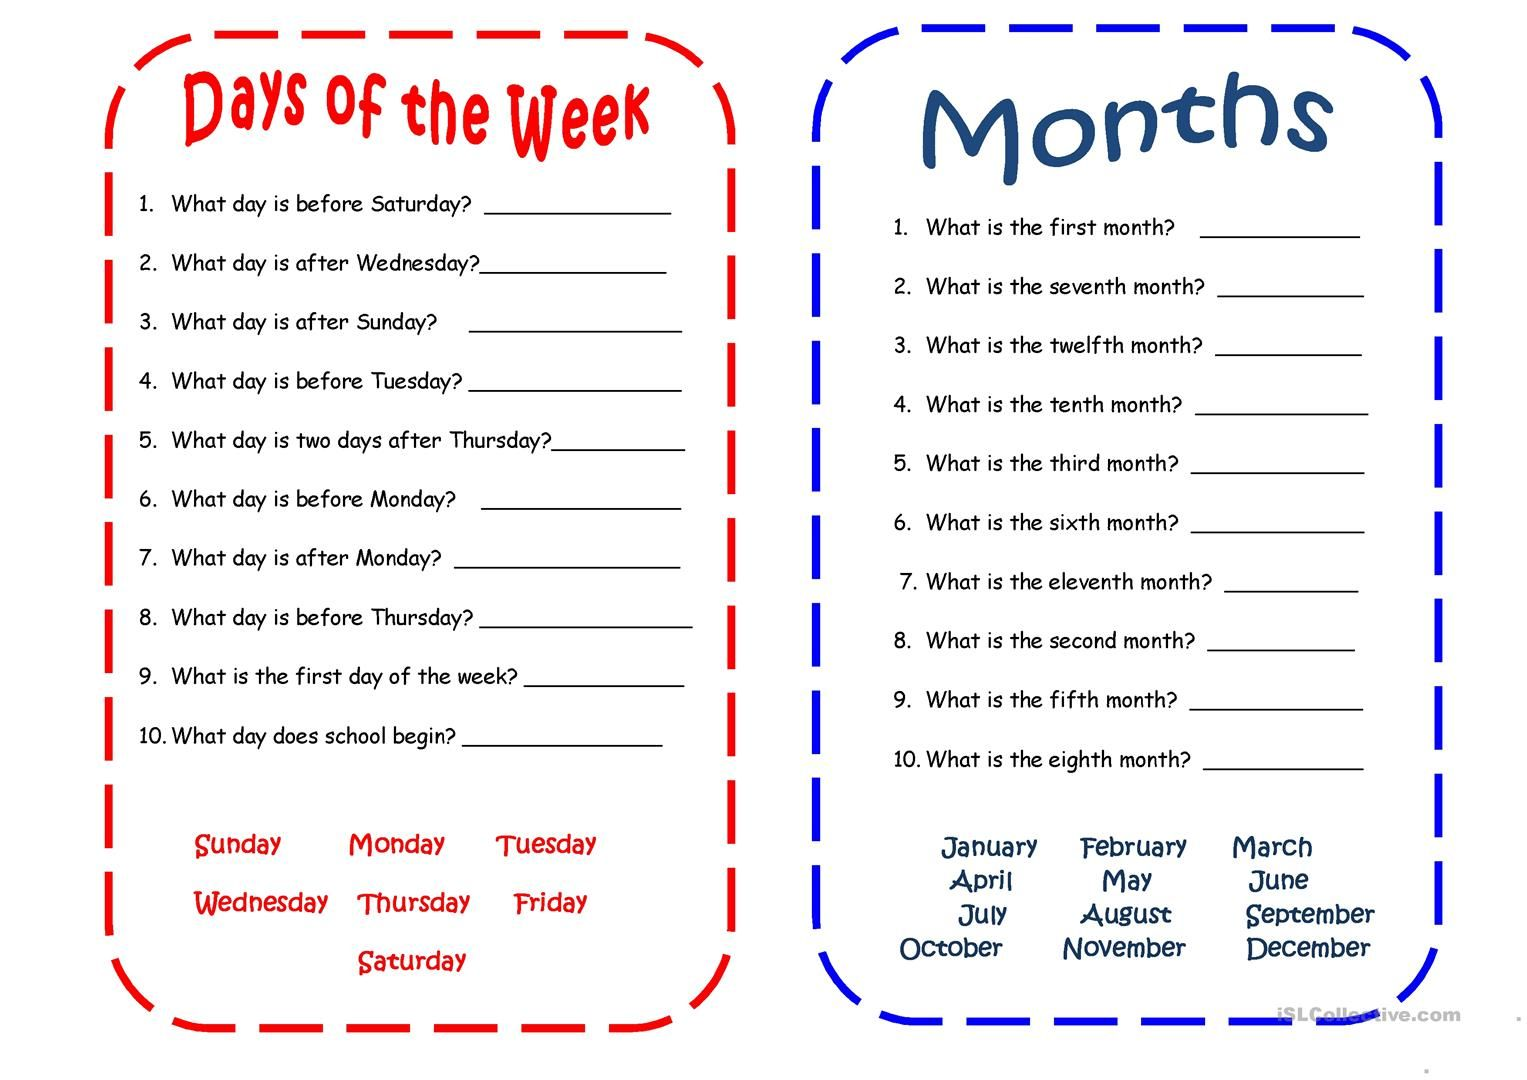 hight resolution of Days and Months worksheet - Free ESL printable worksheets made by teachers    English worksheets for kids